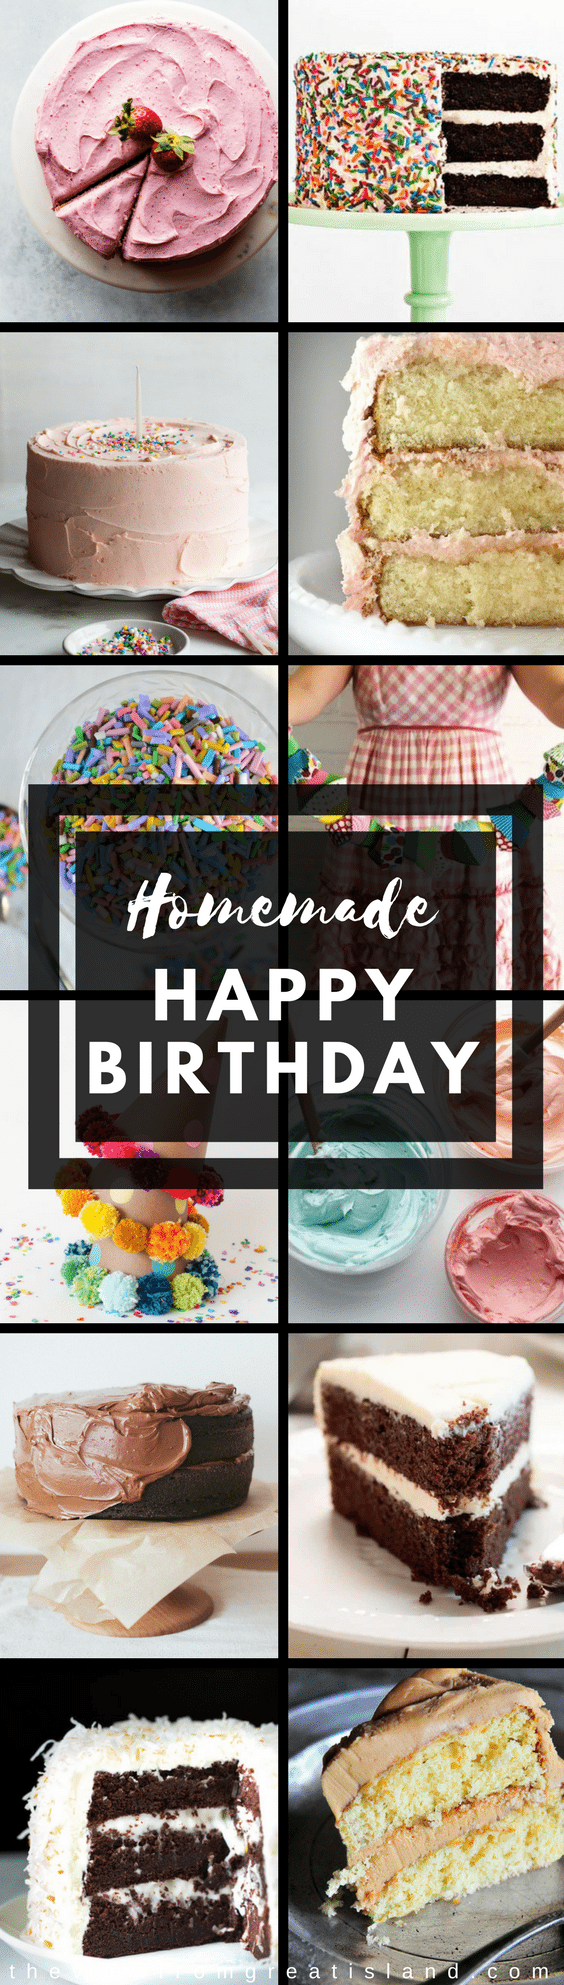 What to Bake Now: Birthday Cakes ~ it's my birthday, and I've got birthday cakes on the brain!  Everybody's got their own idea about what makes a cake a birthday cake, but first and foremost, it has to be homemade.  Here are some of my favorite ways to celebrate that special day, homestyle! #cake #birthday #diybirthday #diybirthdaygarland #diycaketoppers #handmadebirthdaycandles